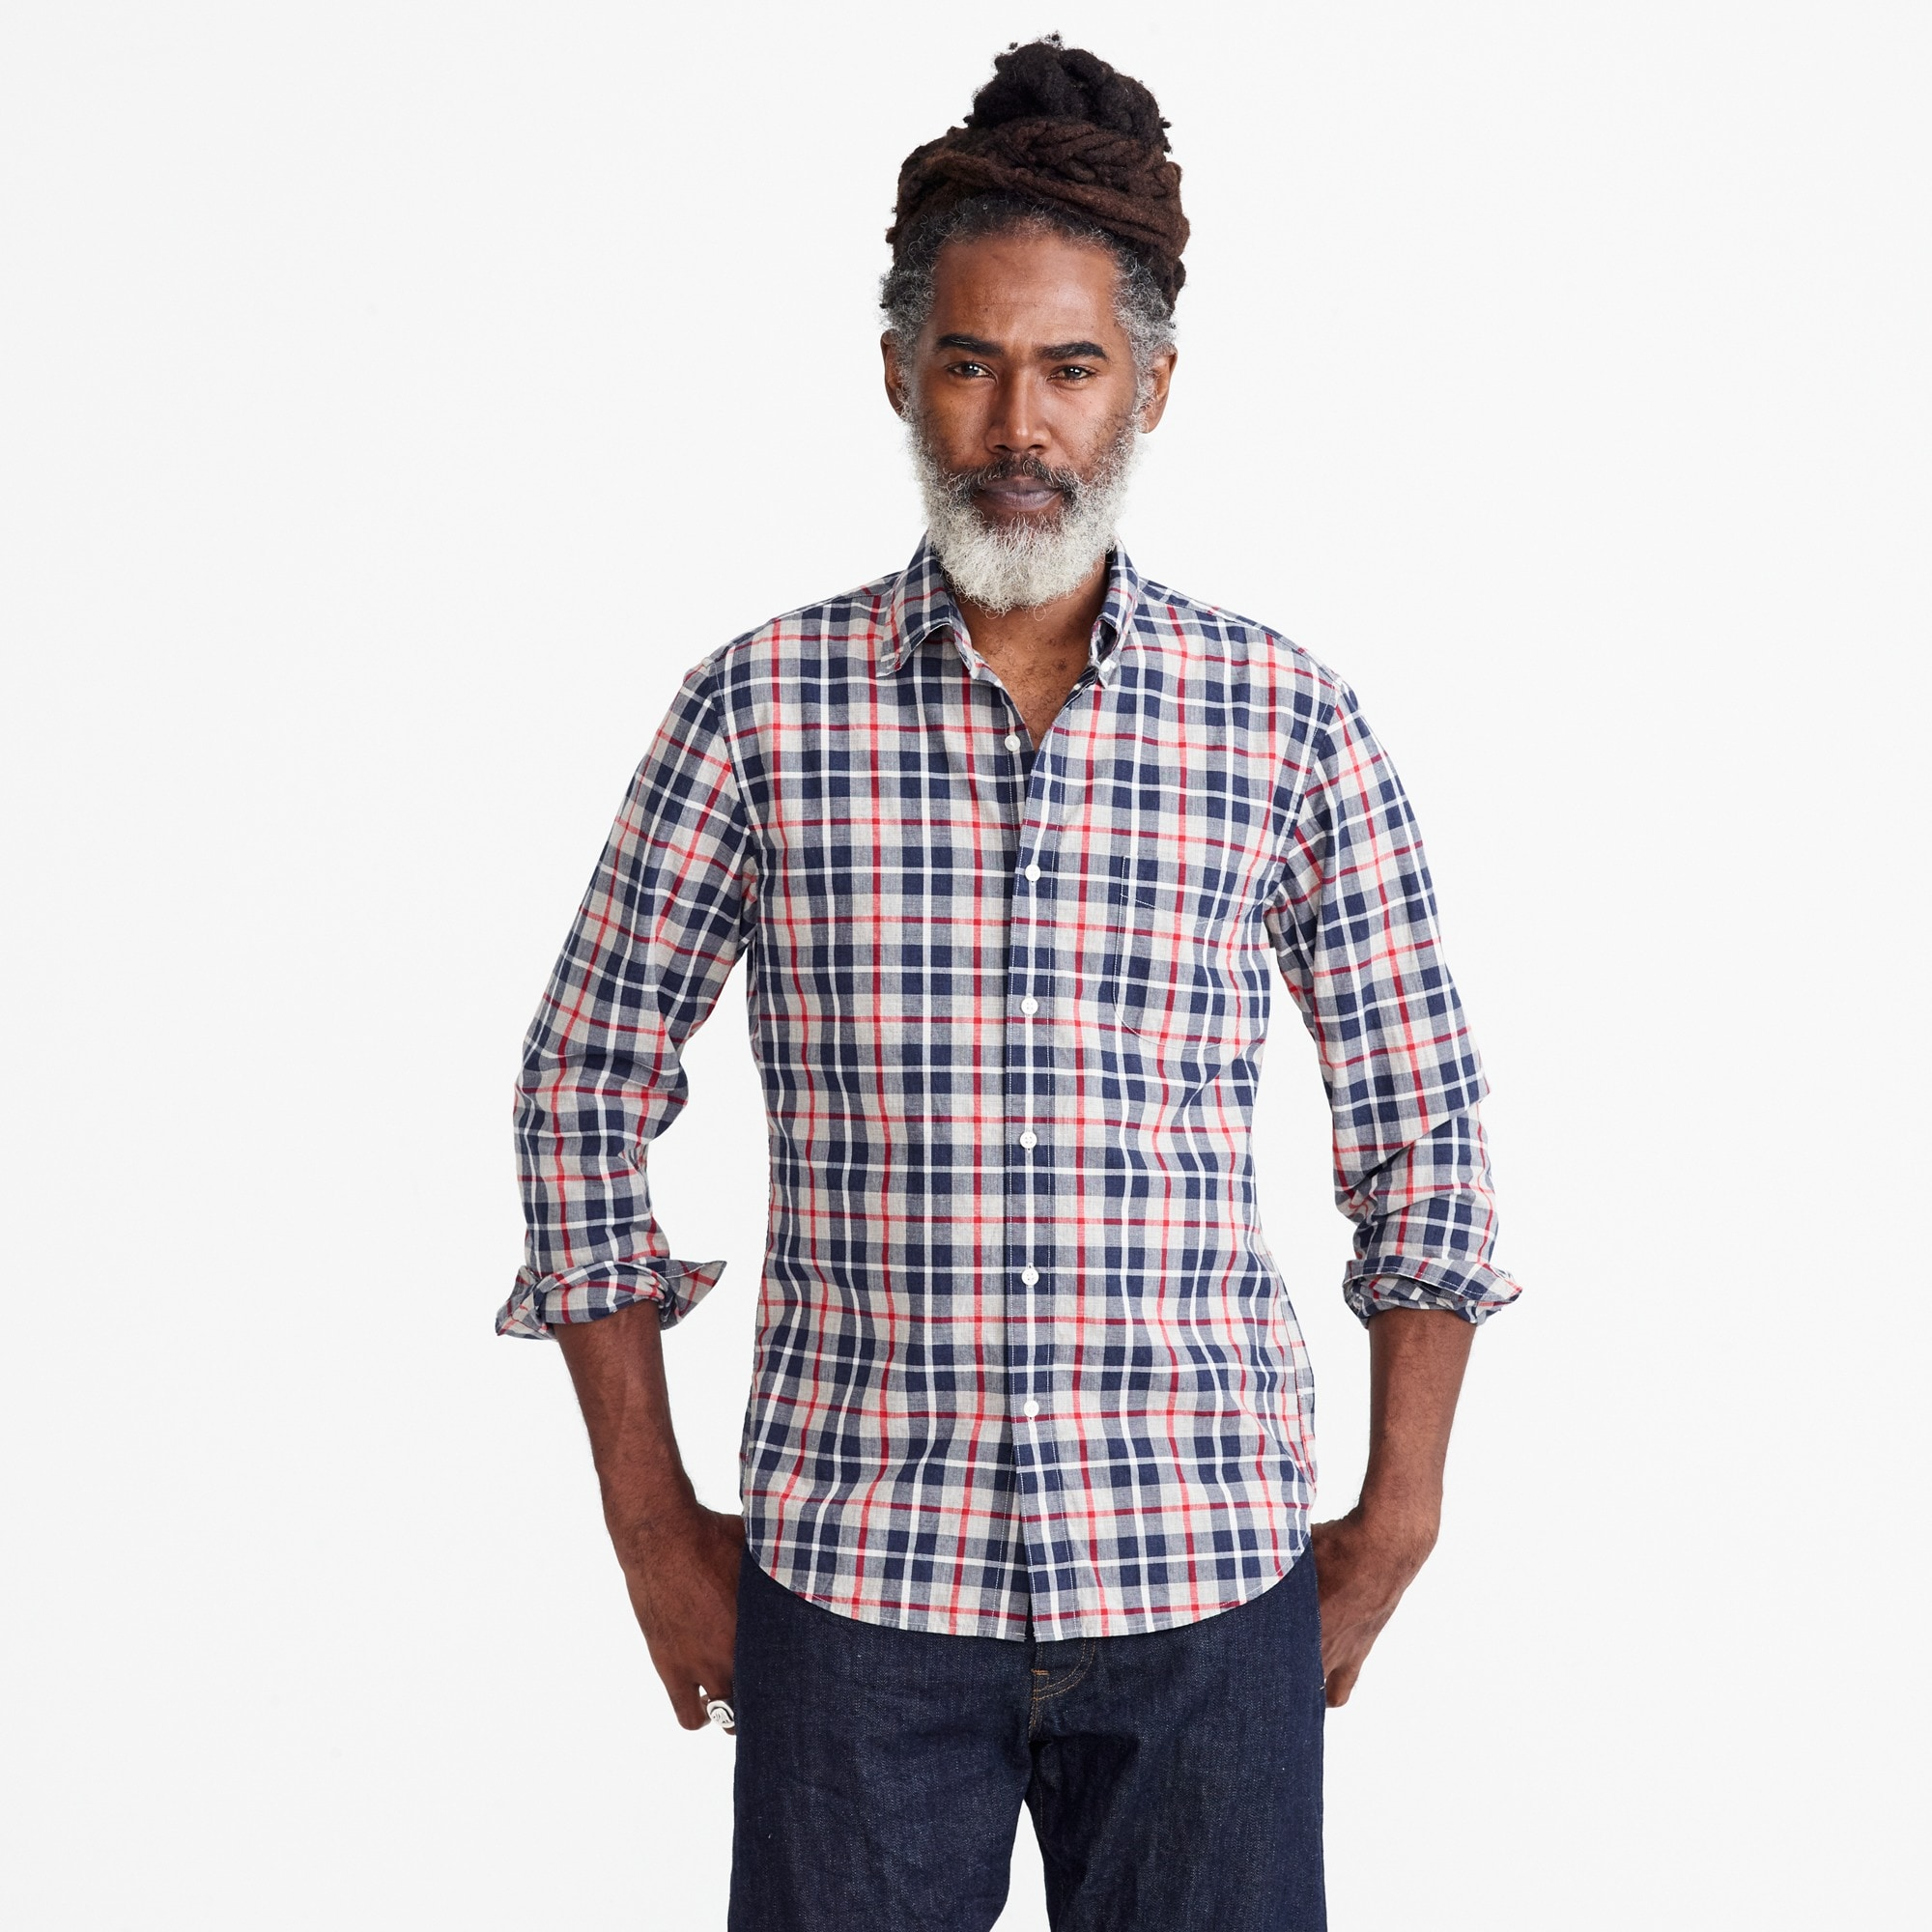 Image 2 for Slim Secret Wash shirt in heather poplin grey and red plaid